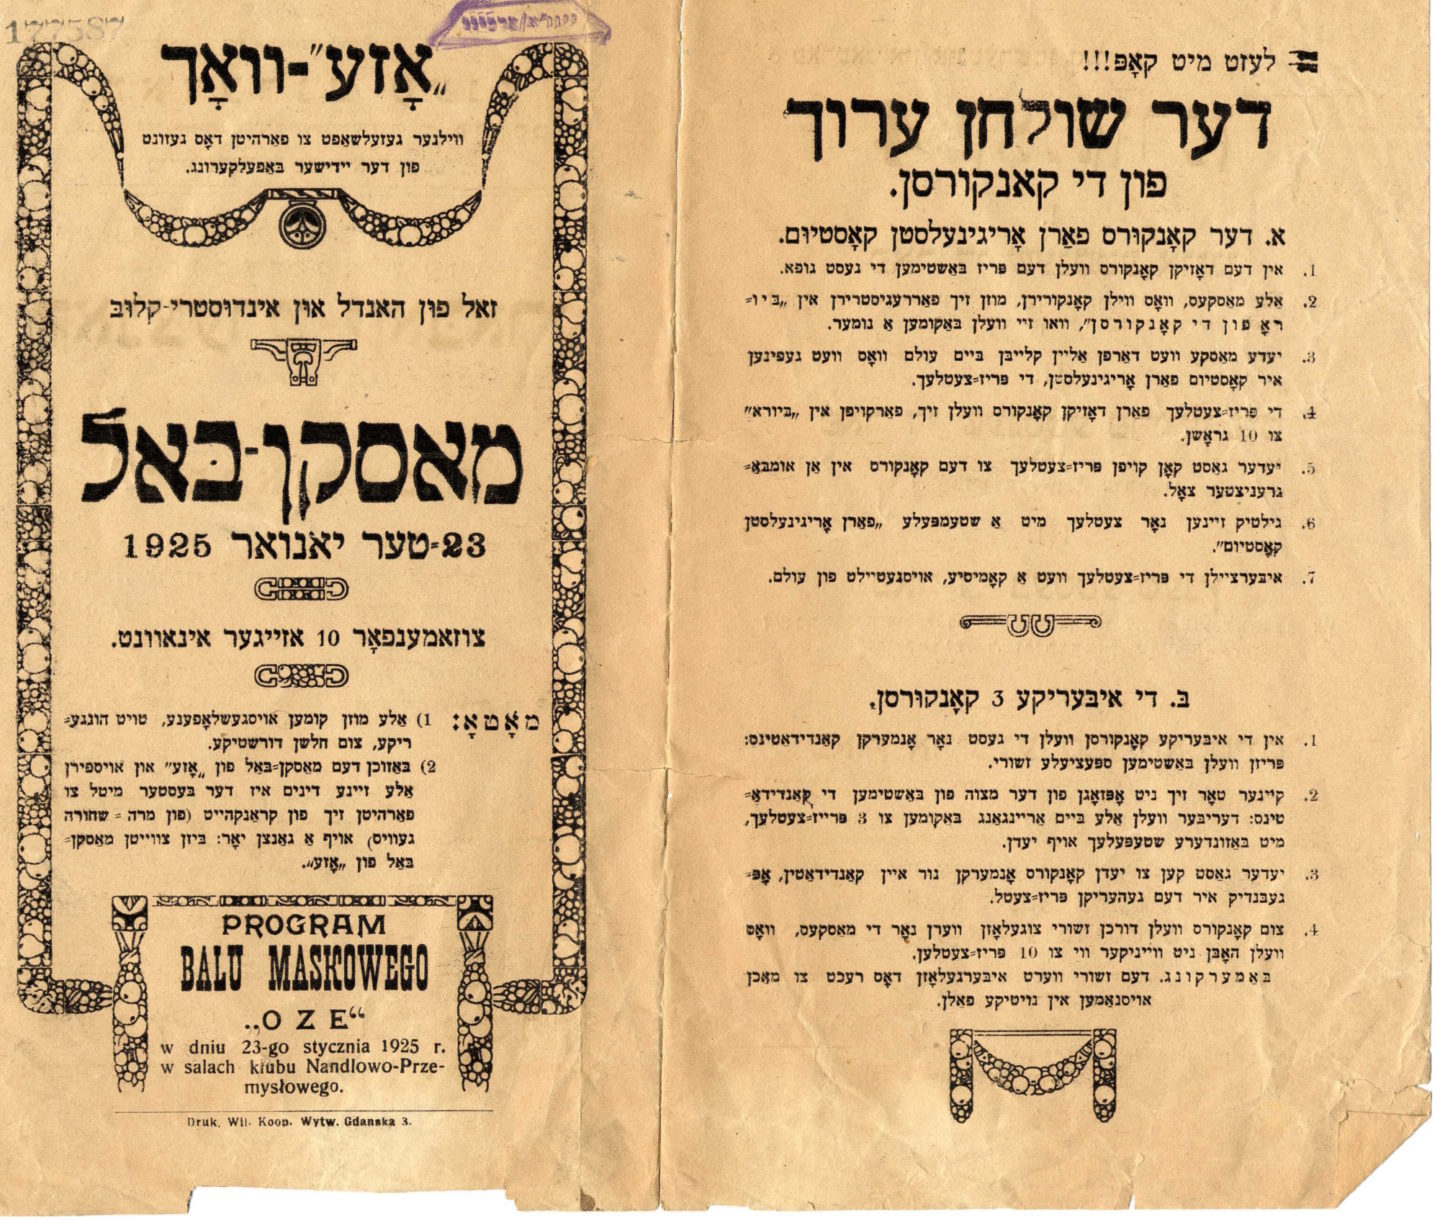 "<p>Outside of a pamphlet advertising a masquerade ball in Warsaw, 1925, held to raise money for the <span class=""caps"">OZE</span> (Obshchestvo okhraneniia zdorov'ia evreiskogo naseleniia), a Jewish-sponsored public health organization. Courtesy of the <span class=""caps"">YIVO</span> Institute for Jewish&nbsp;Research.</p>"